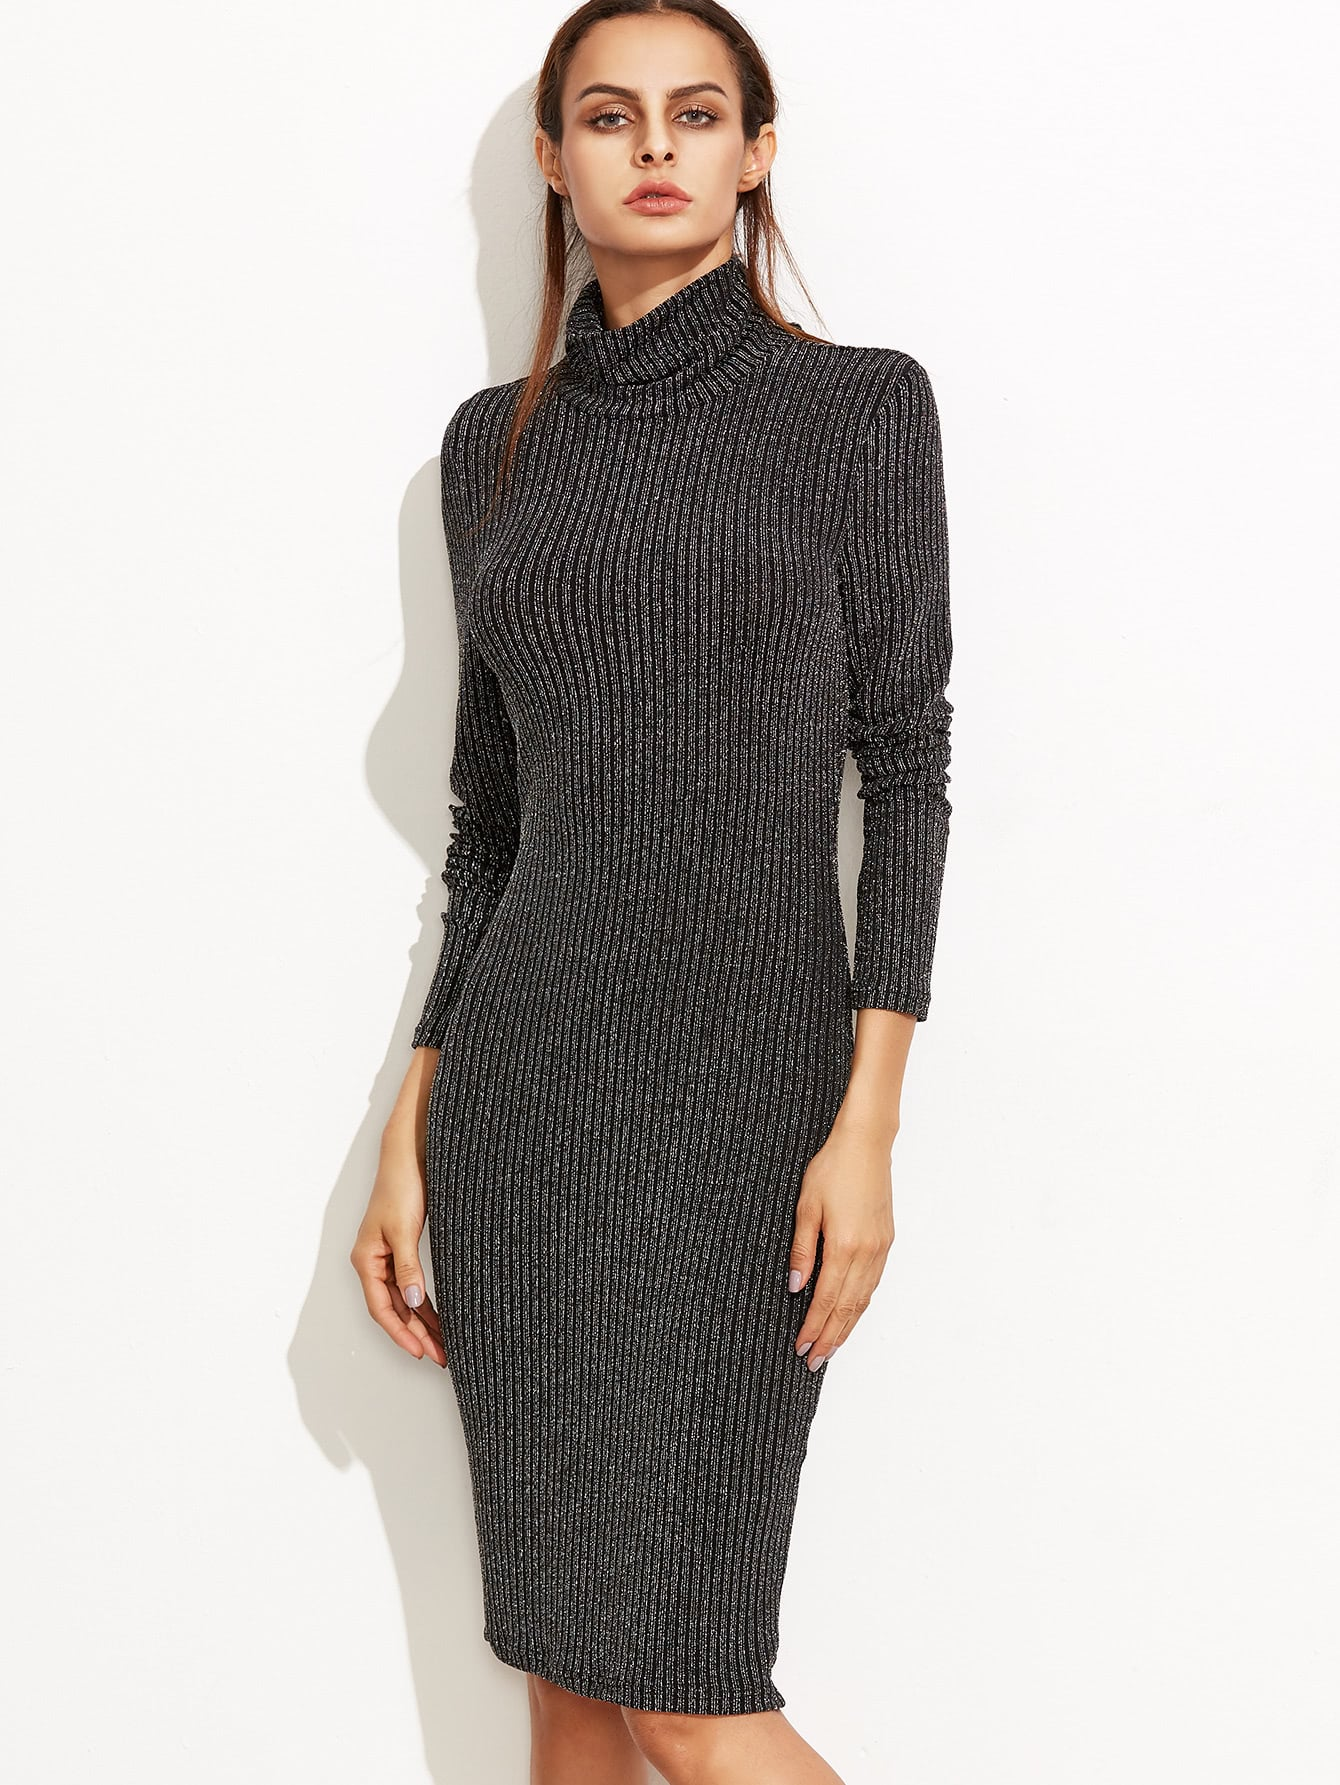 Black Marled Knit Cowl Neck Ribbed Pencil Dress dress161005706